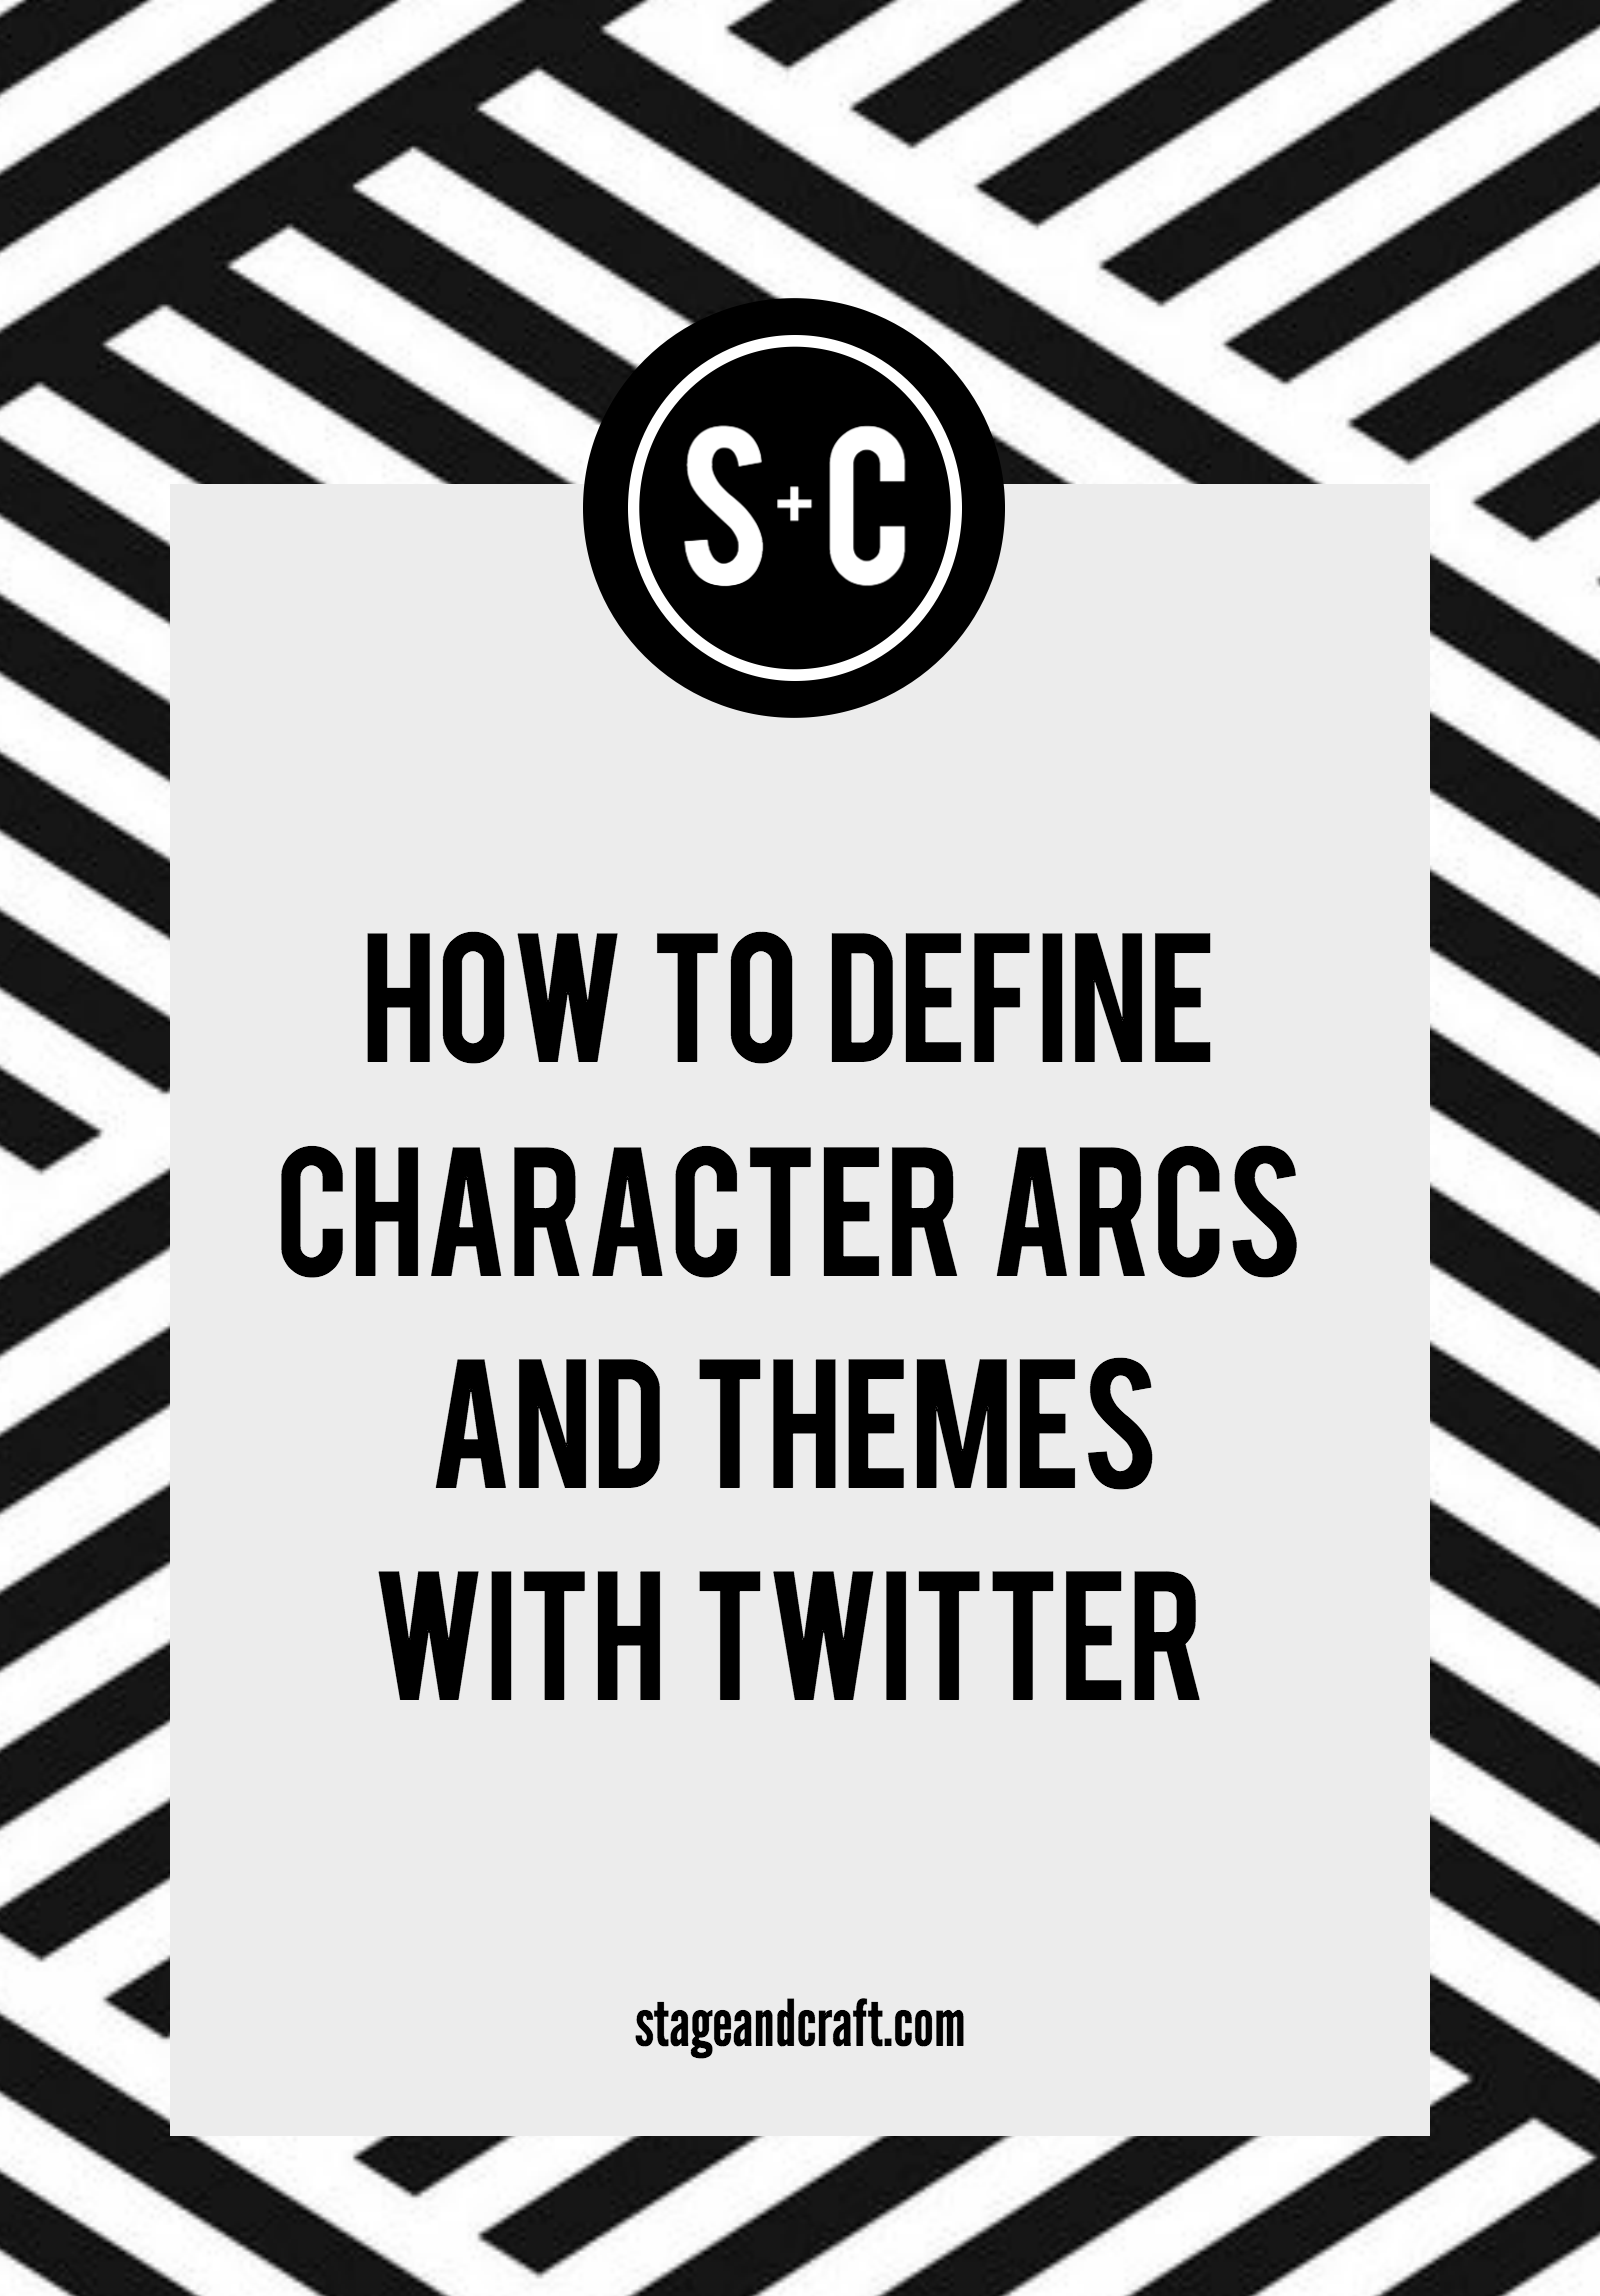 How To Define Character Arcs And Themes With Twitter